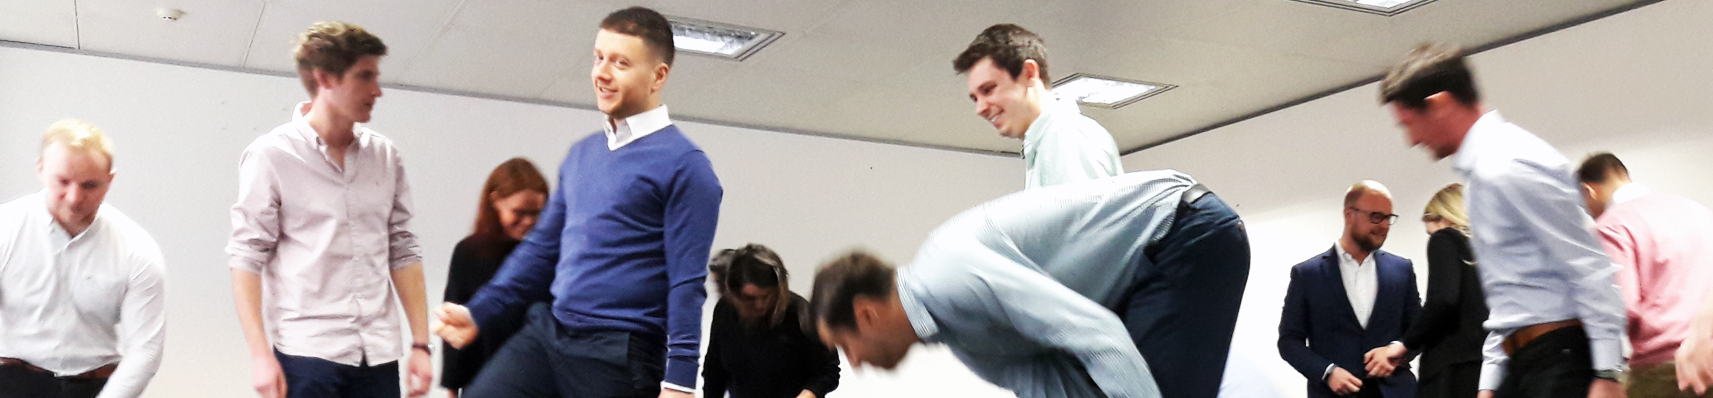 Corporate team doing silly walks as part of a team building workshop in London